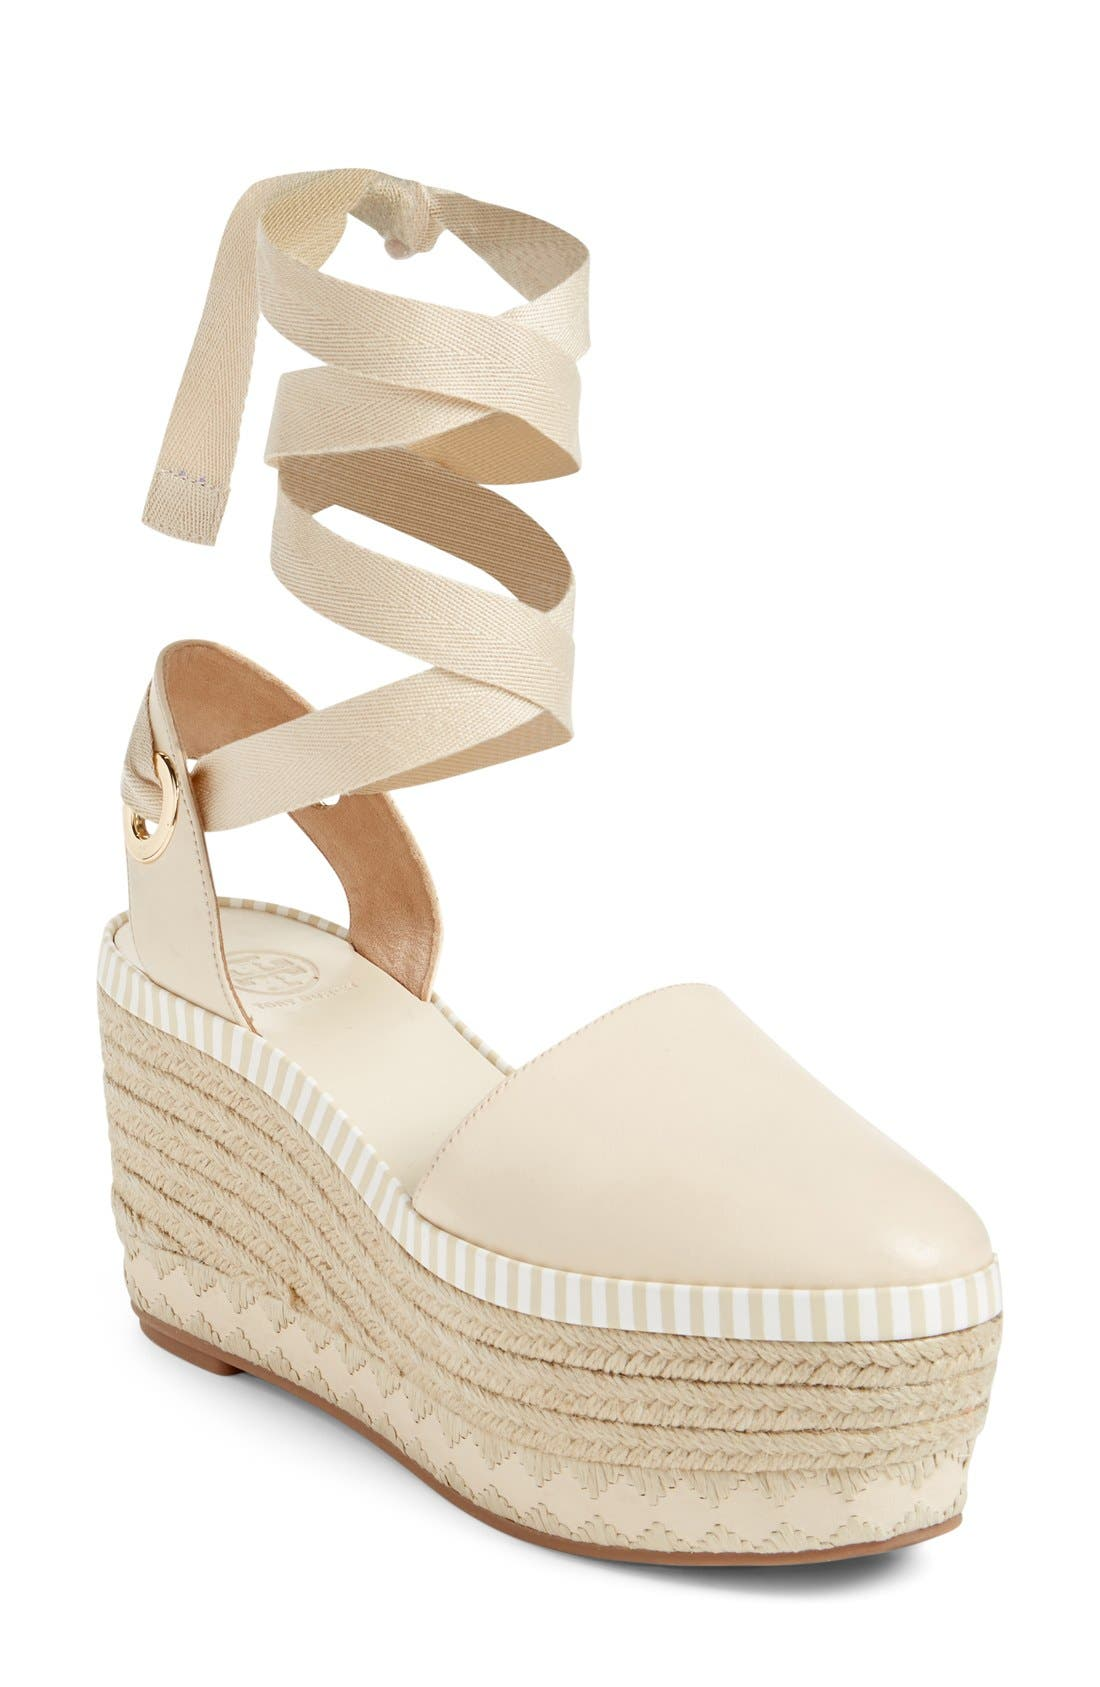 Alternate Image 1 Selected - Tory Burch Dandy Platform Espadrille (Women)